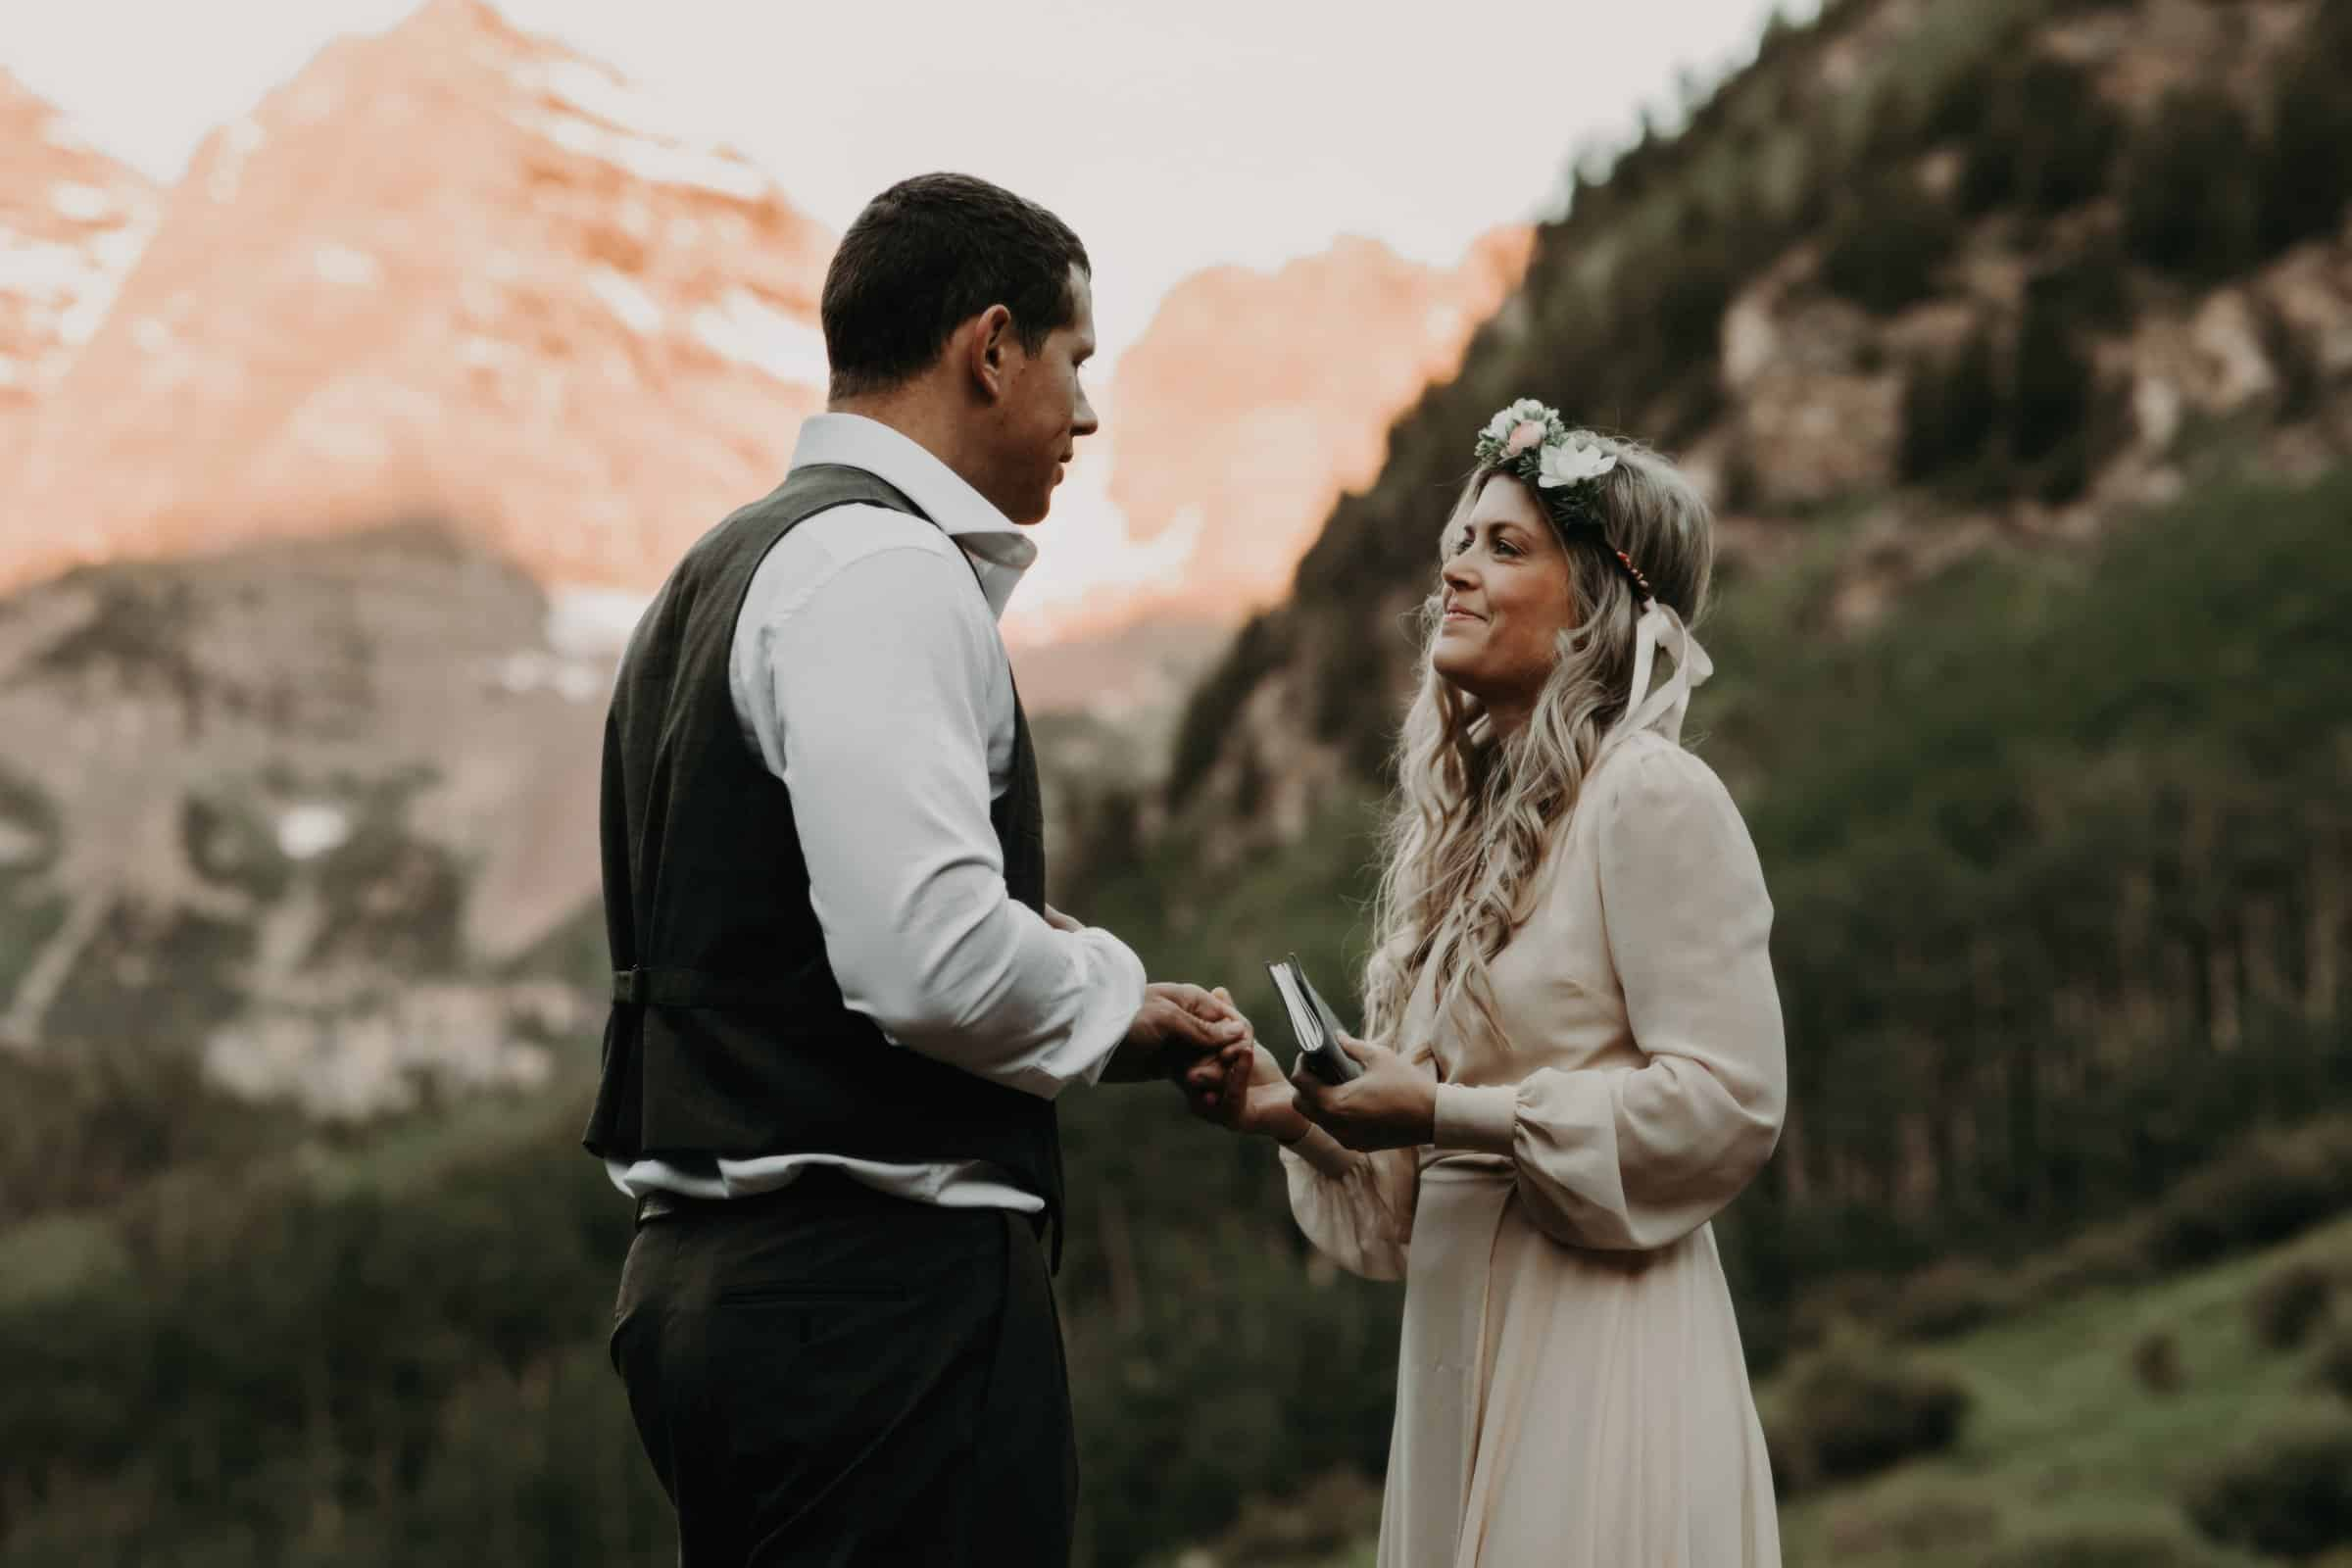 couple exchanging vows during an outdoor ceremony at the Aspen Colorado Maroon Bells